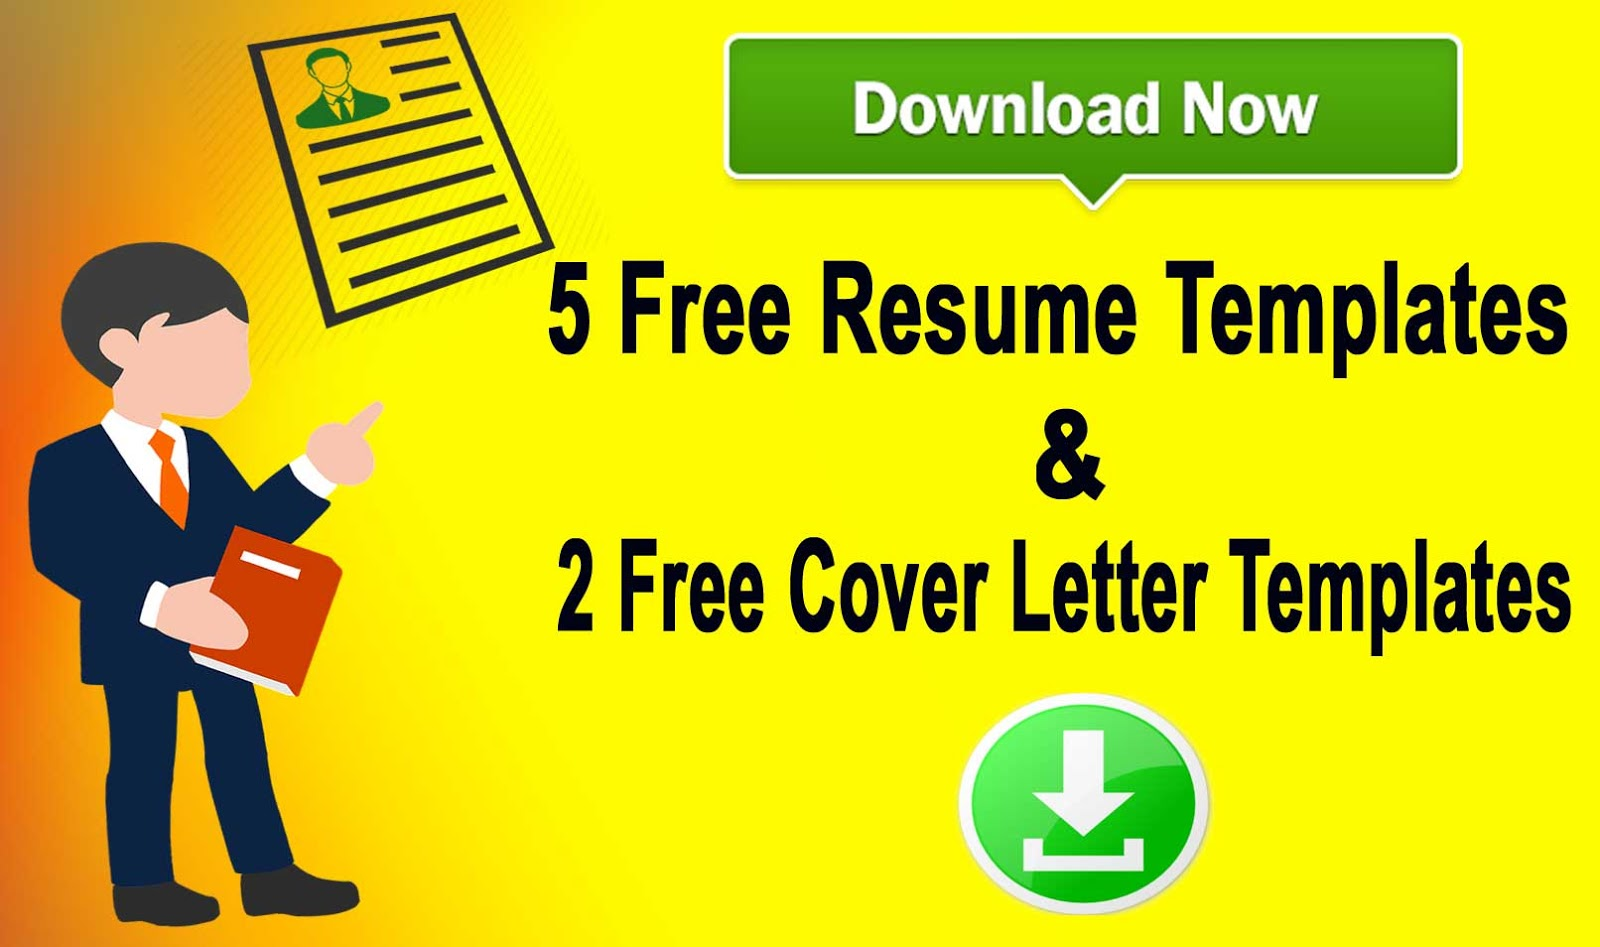 Download 5 resume templates two cover letters templates 2017 download free resumecv templates cover letters yelopaper Image collections